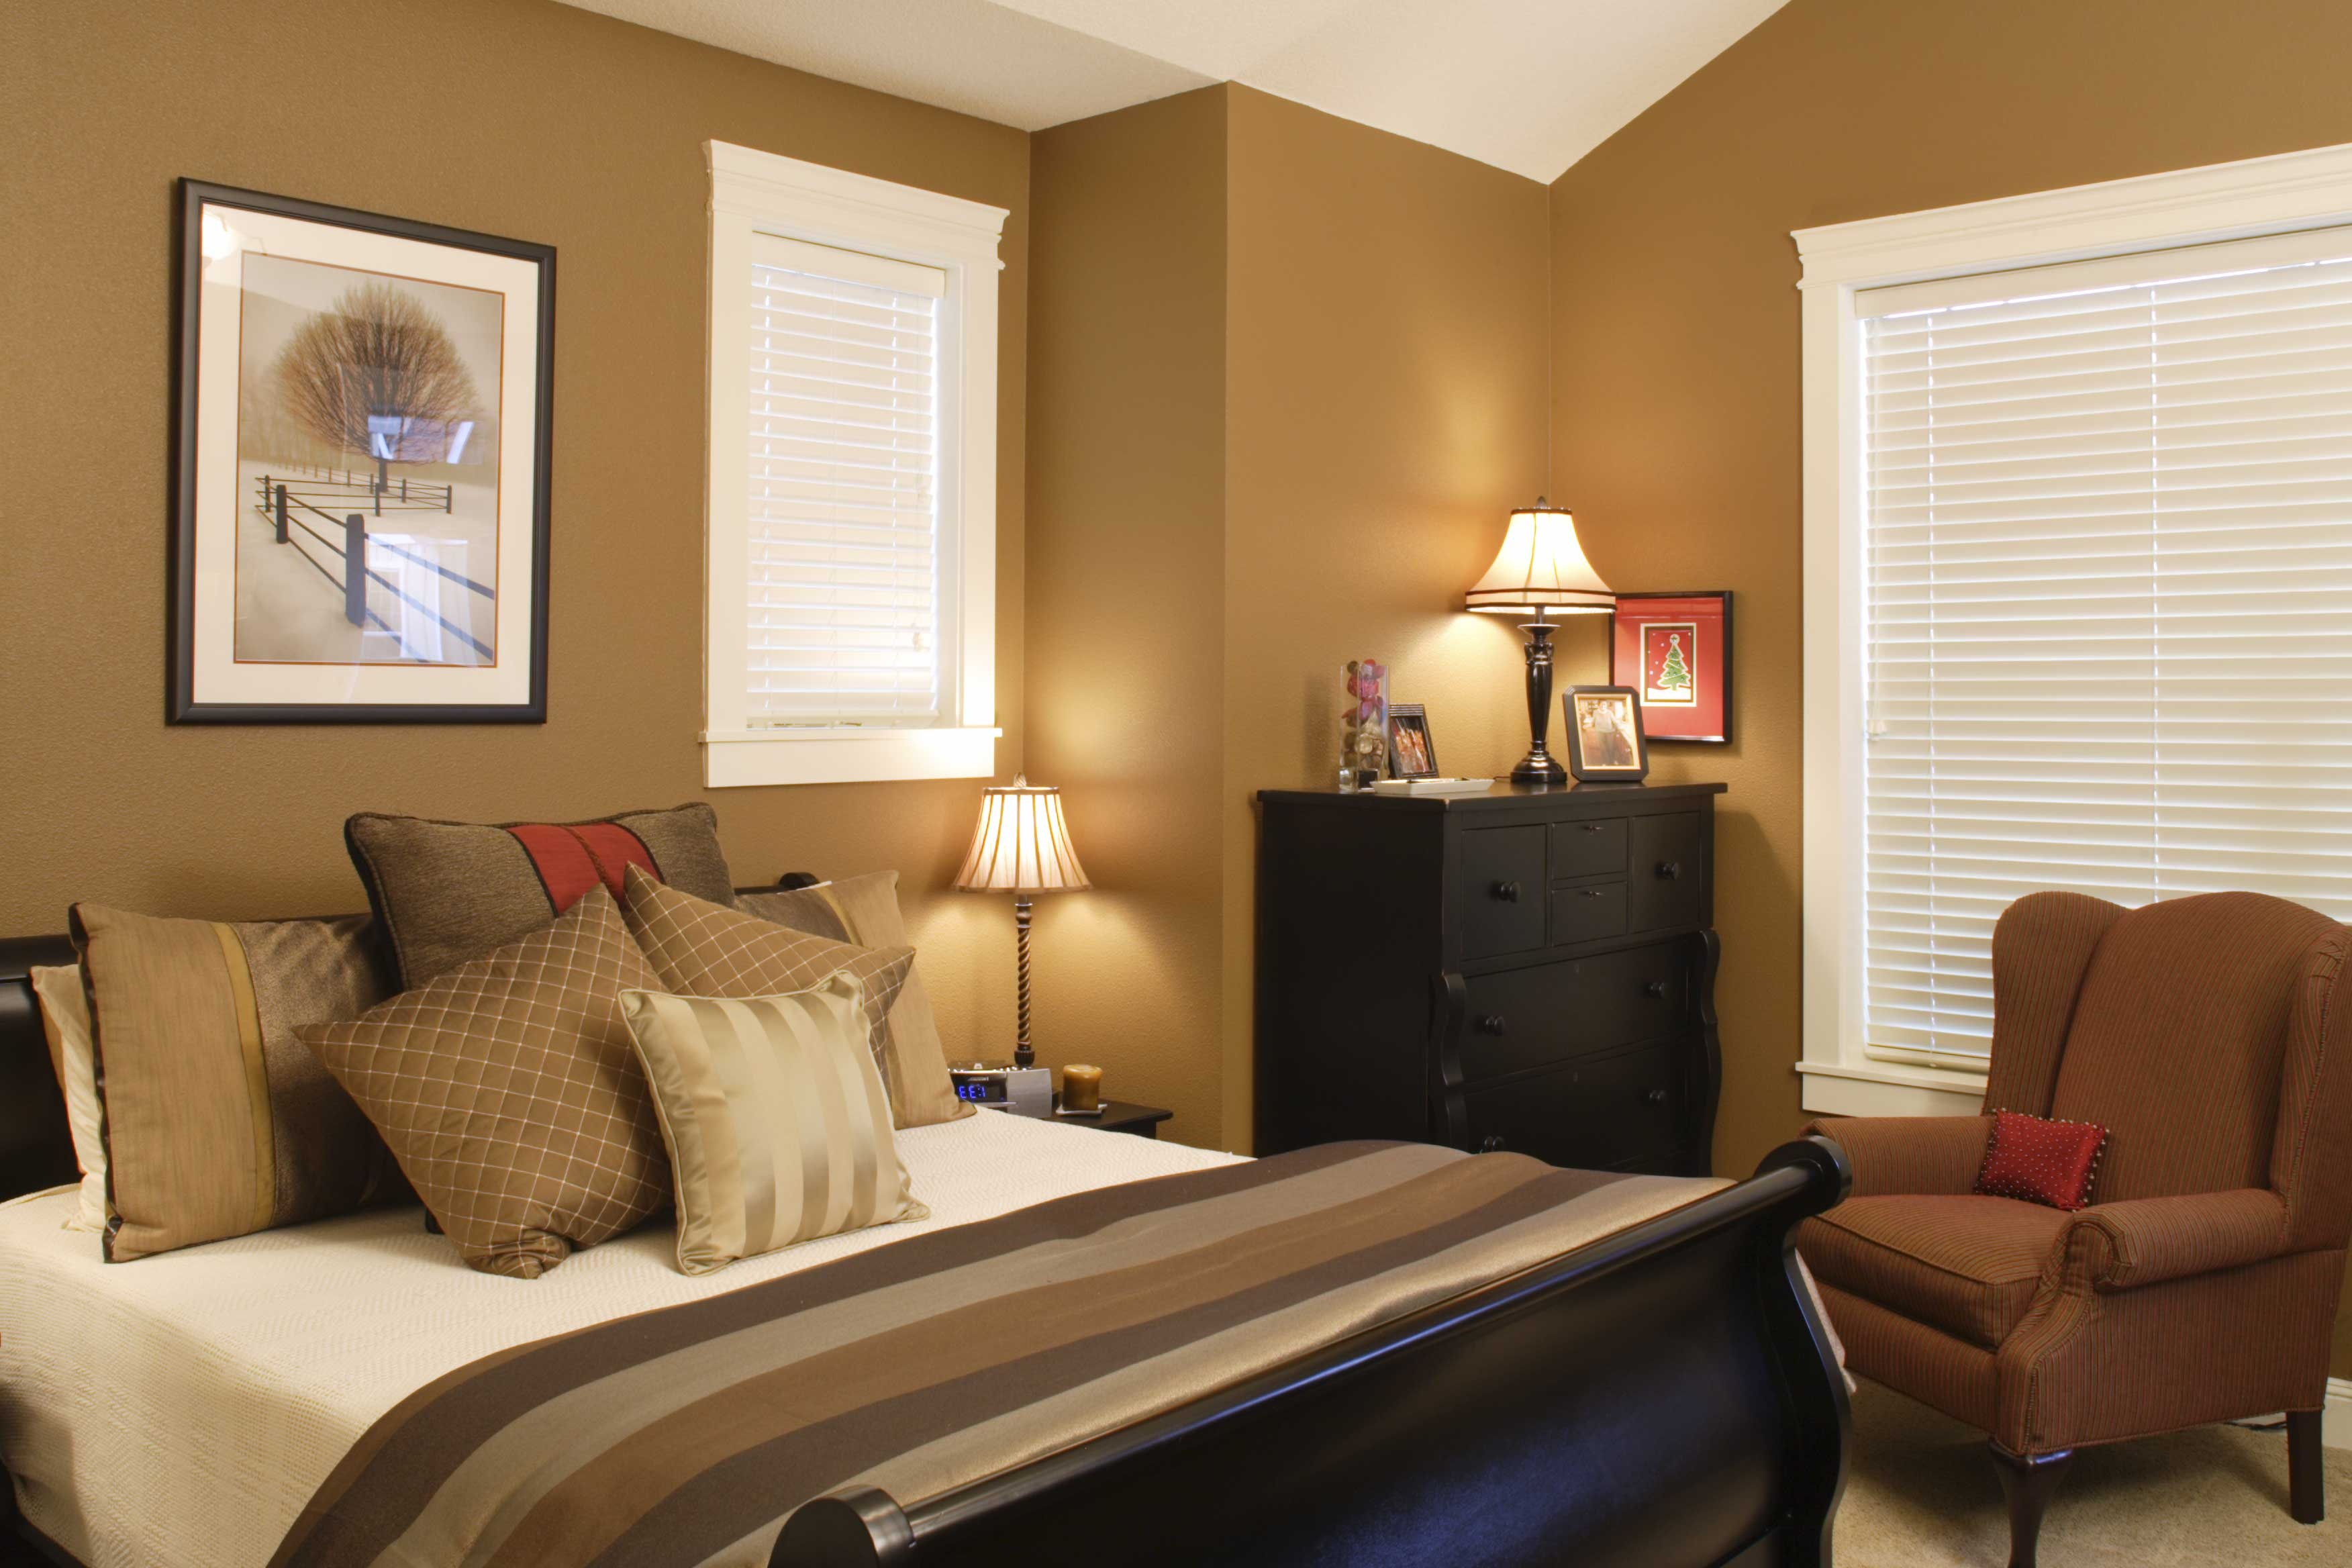 bedroom color brown Amazing Bedroom Color Bedroom Colors With Coffee Brown CultHomes 2336 X 3504